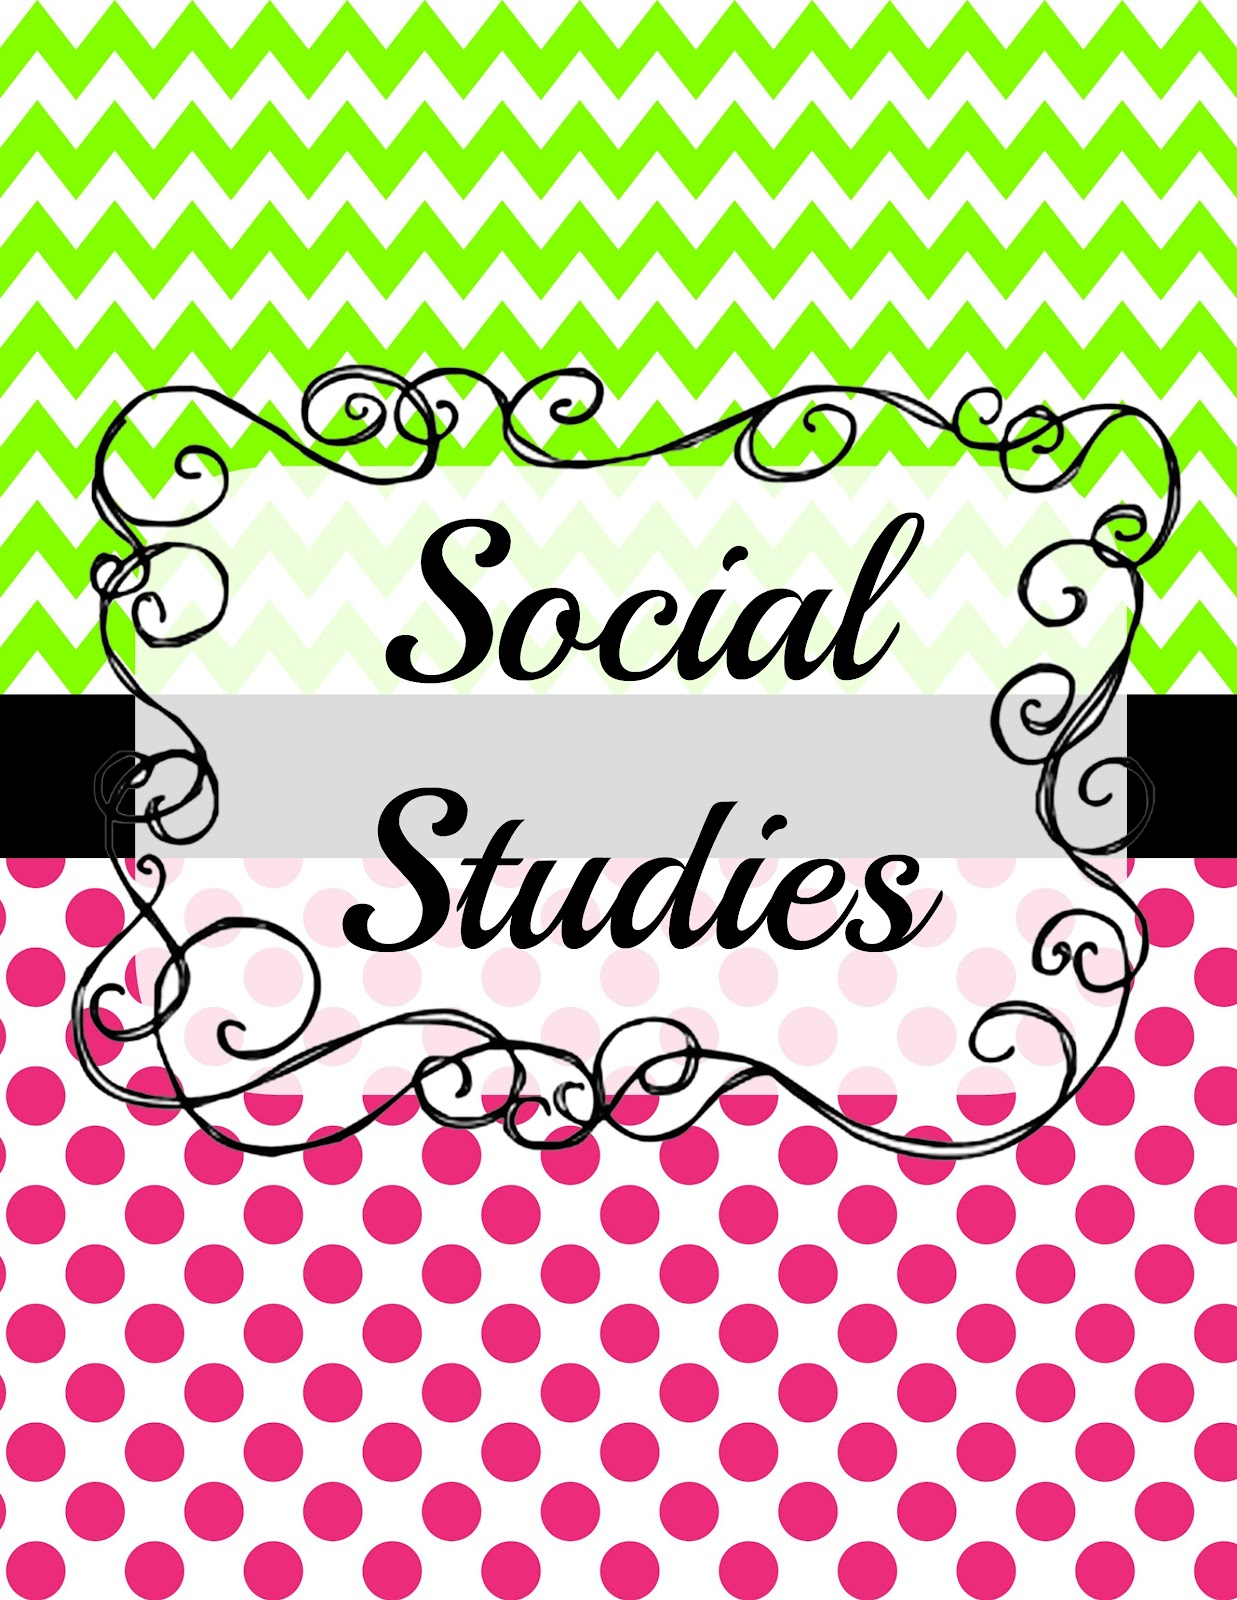 Awesome Cute Binder Wallpapers That Are Printable Cute Social Studies Clipart Clipground